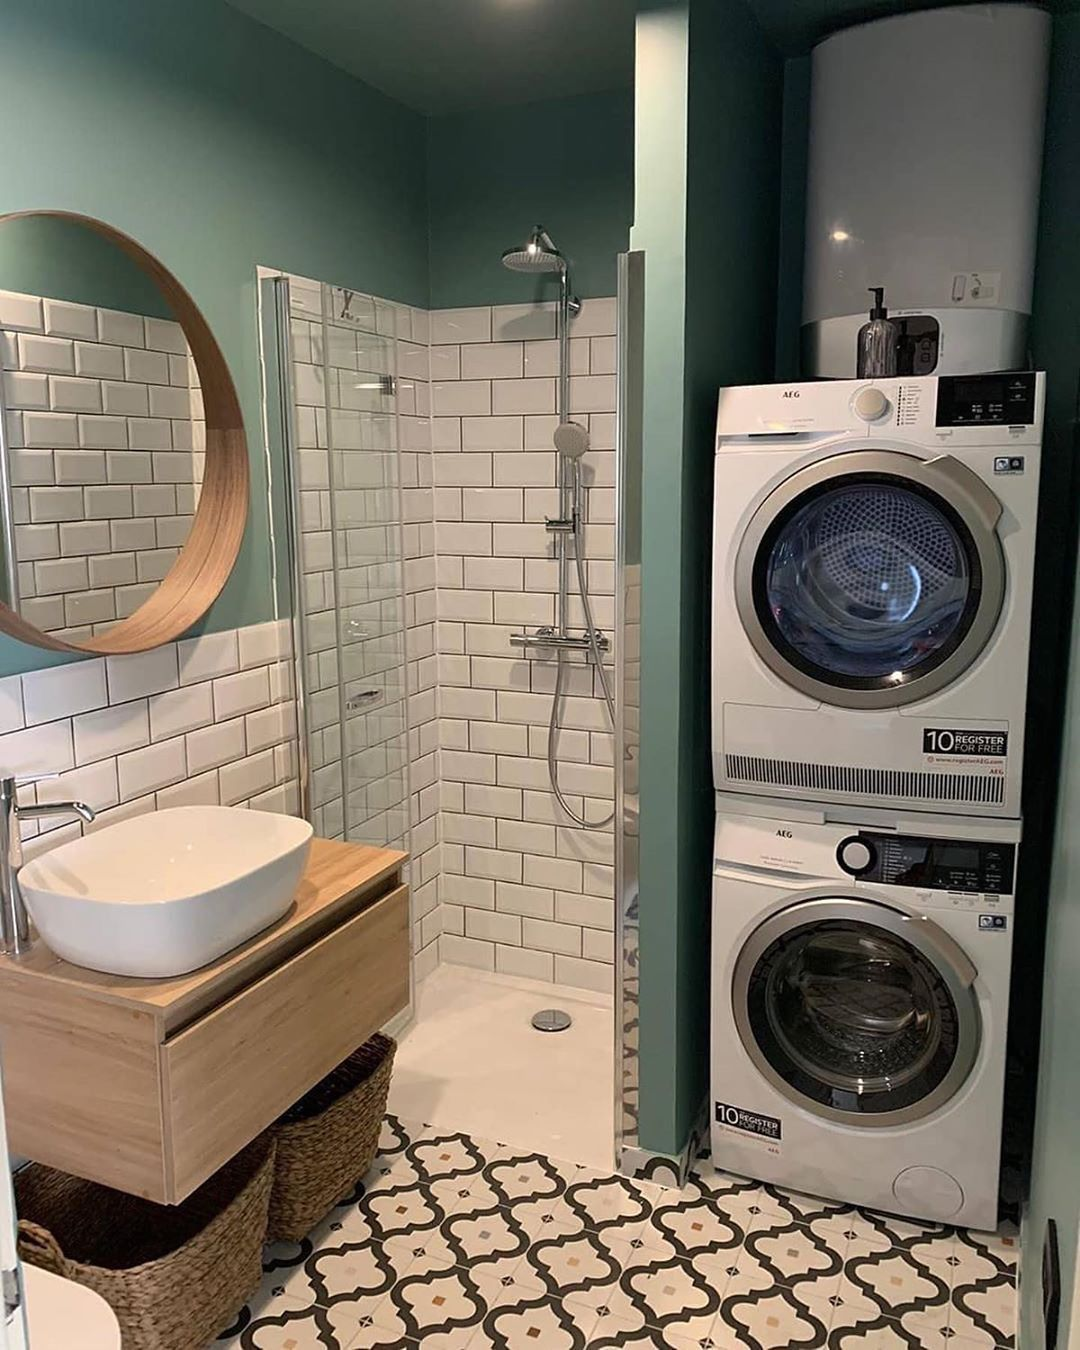 Pinterest Claudiagabg In 2020 Small Bathroom Makeover Small